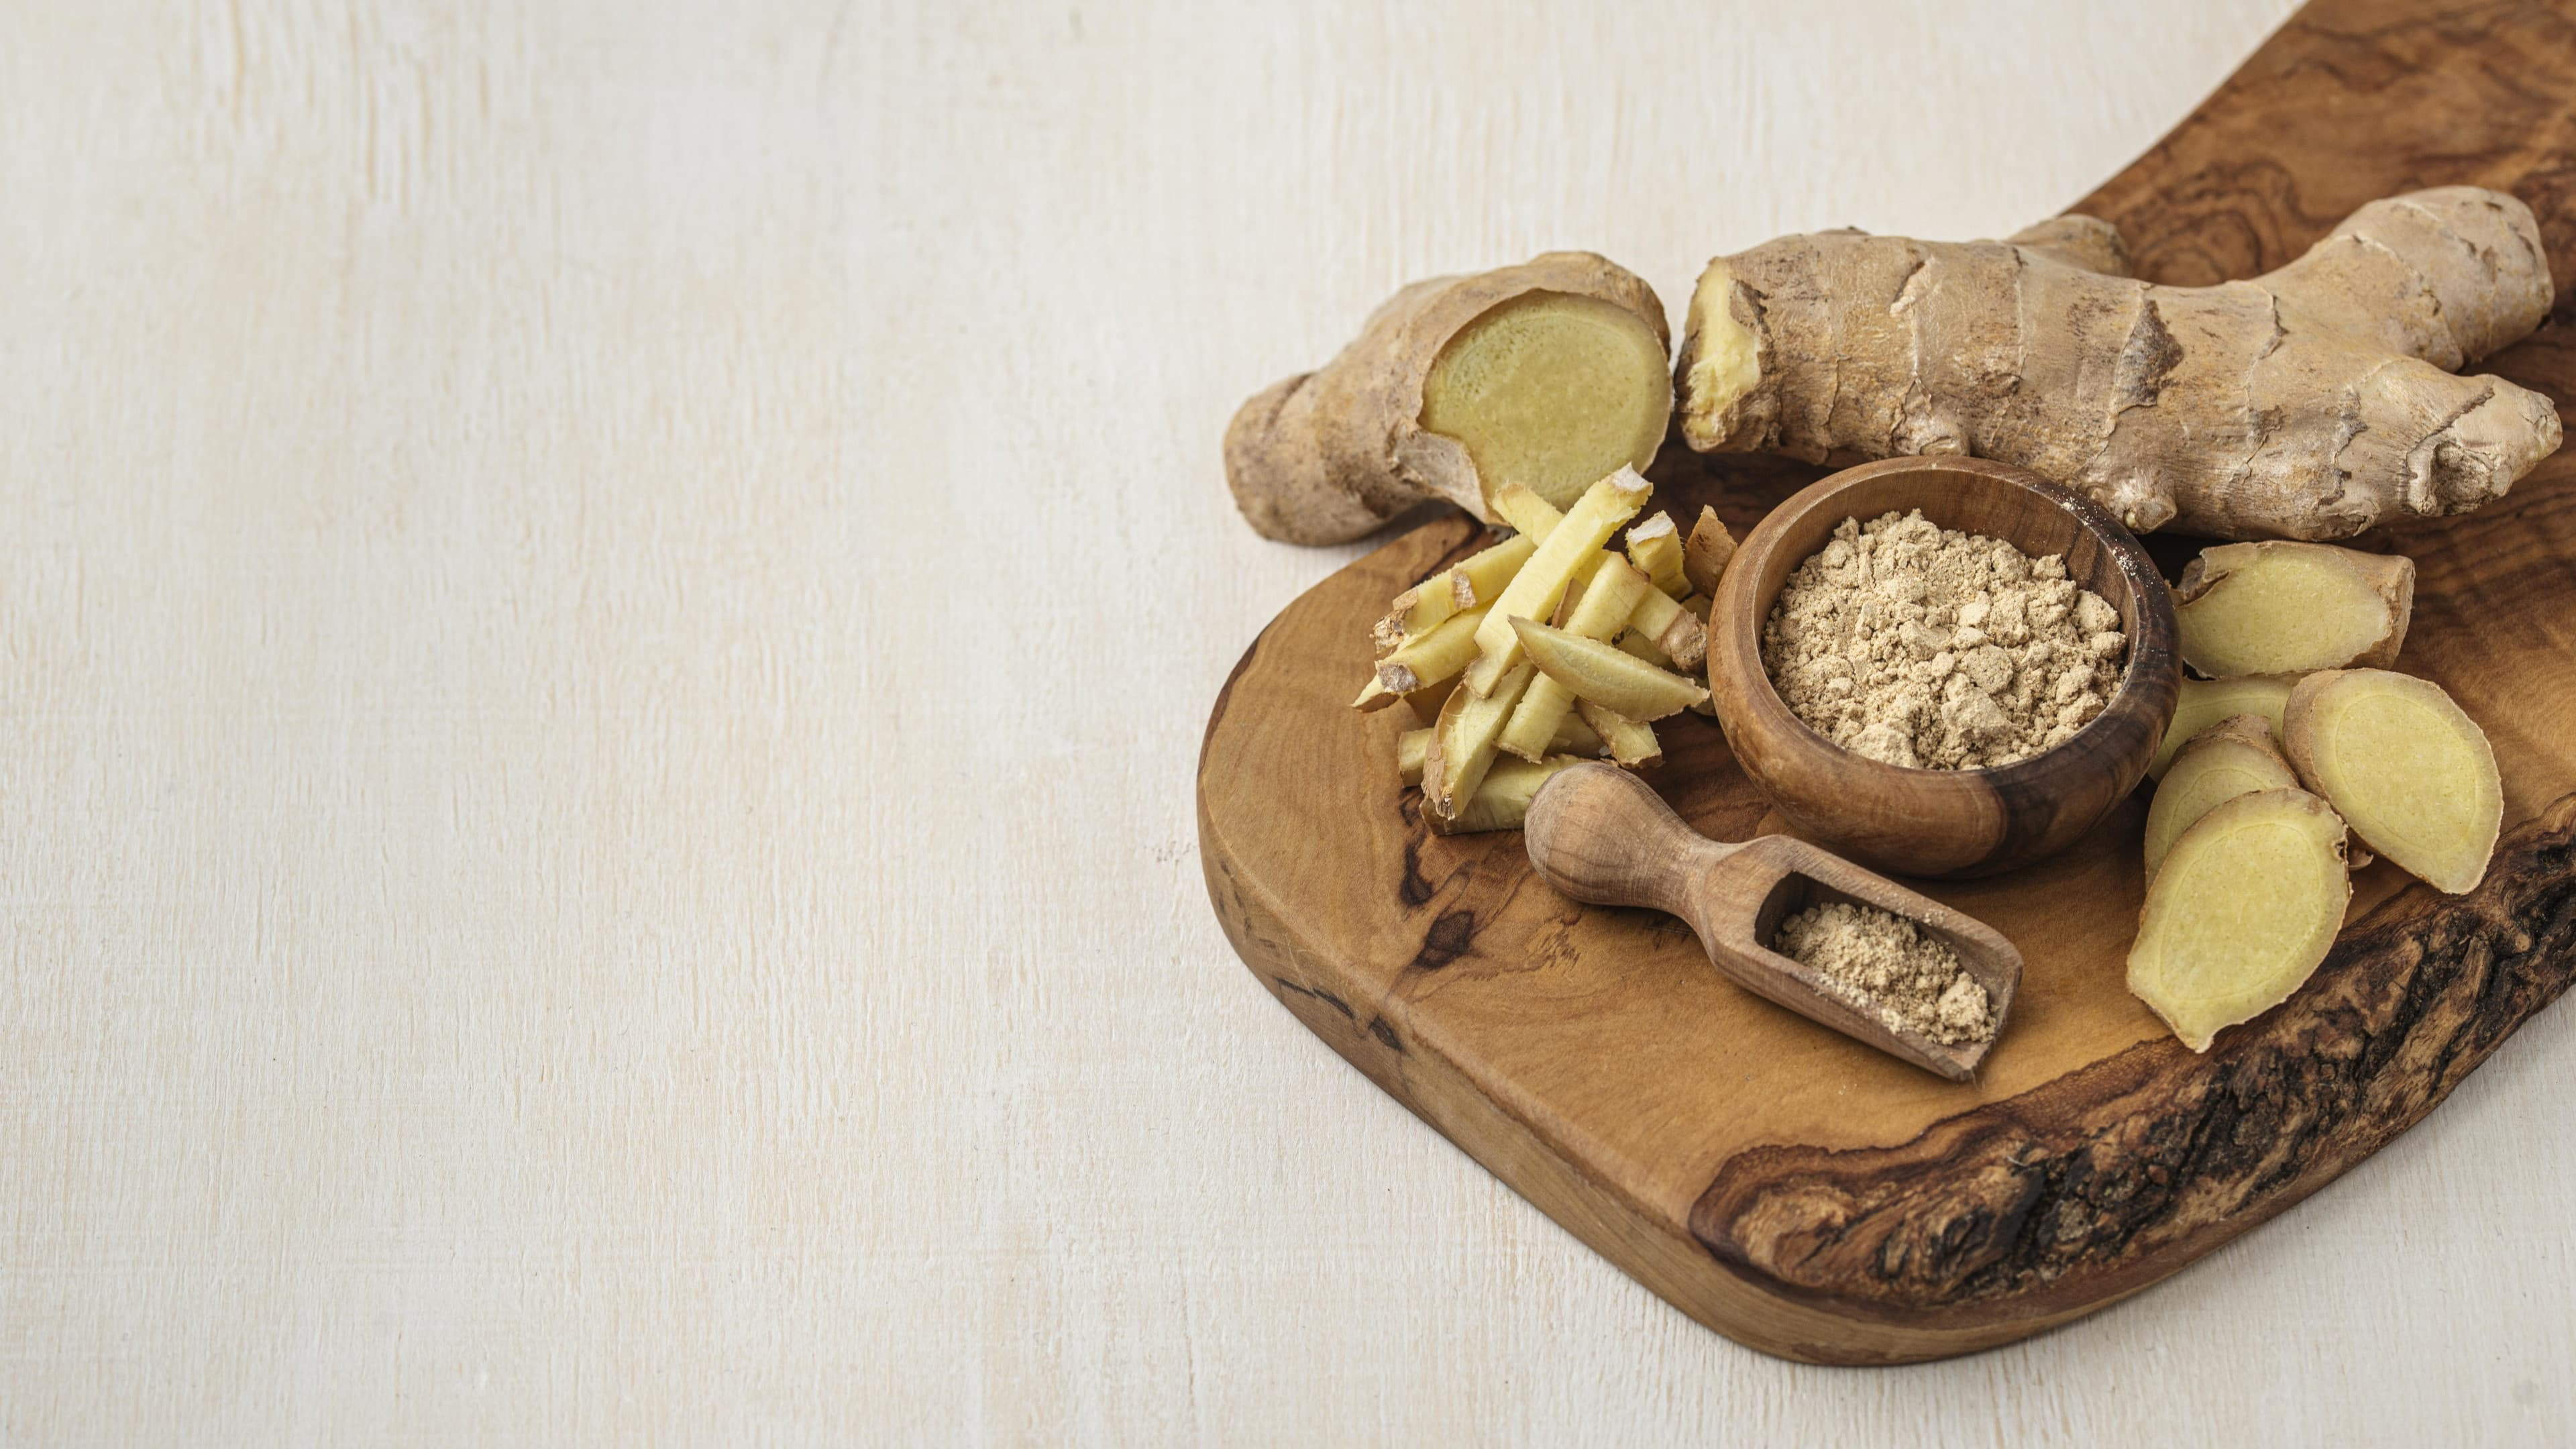 Assortment of fresh and powdered ginger on wooden board